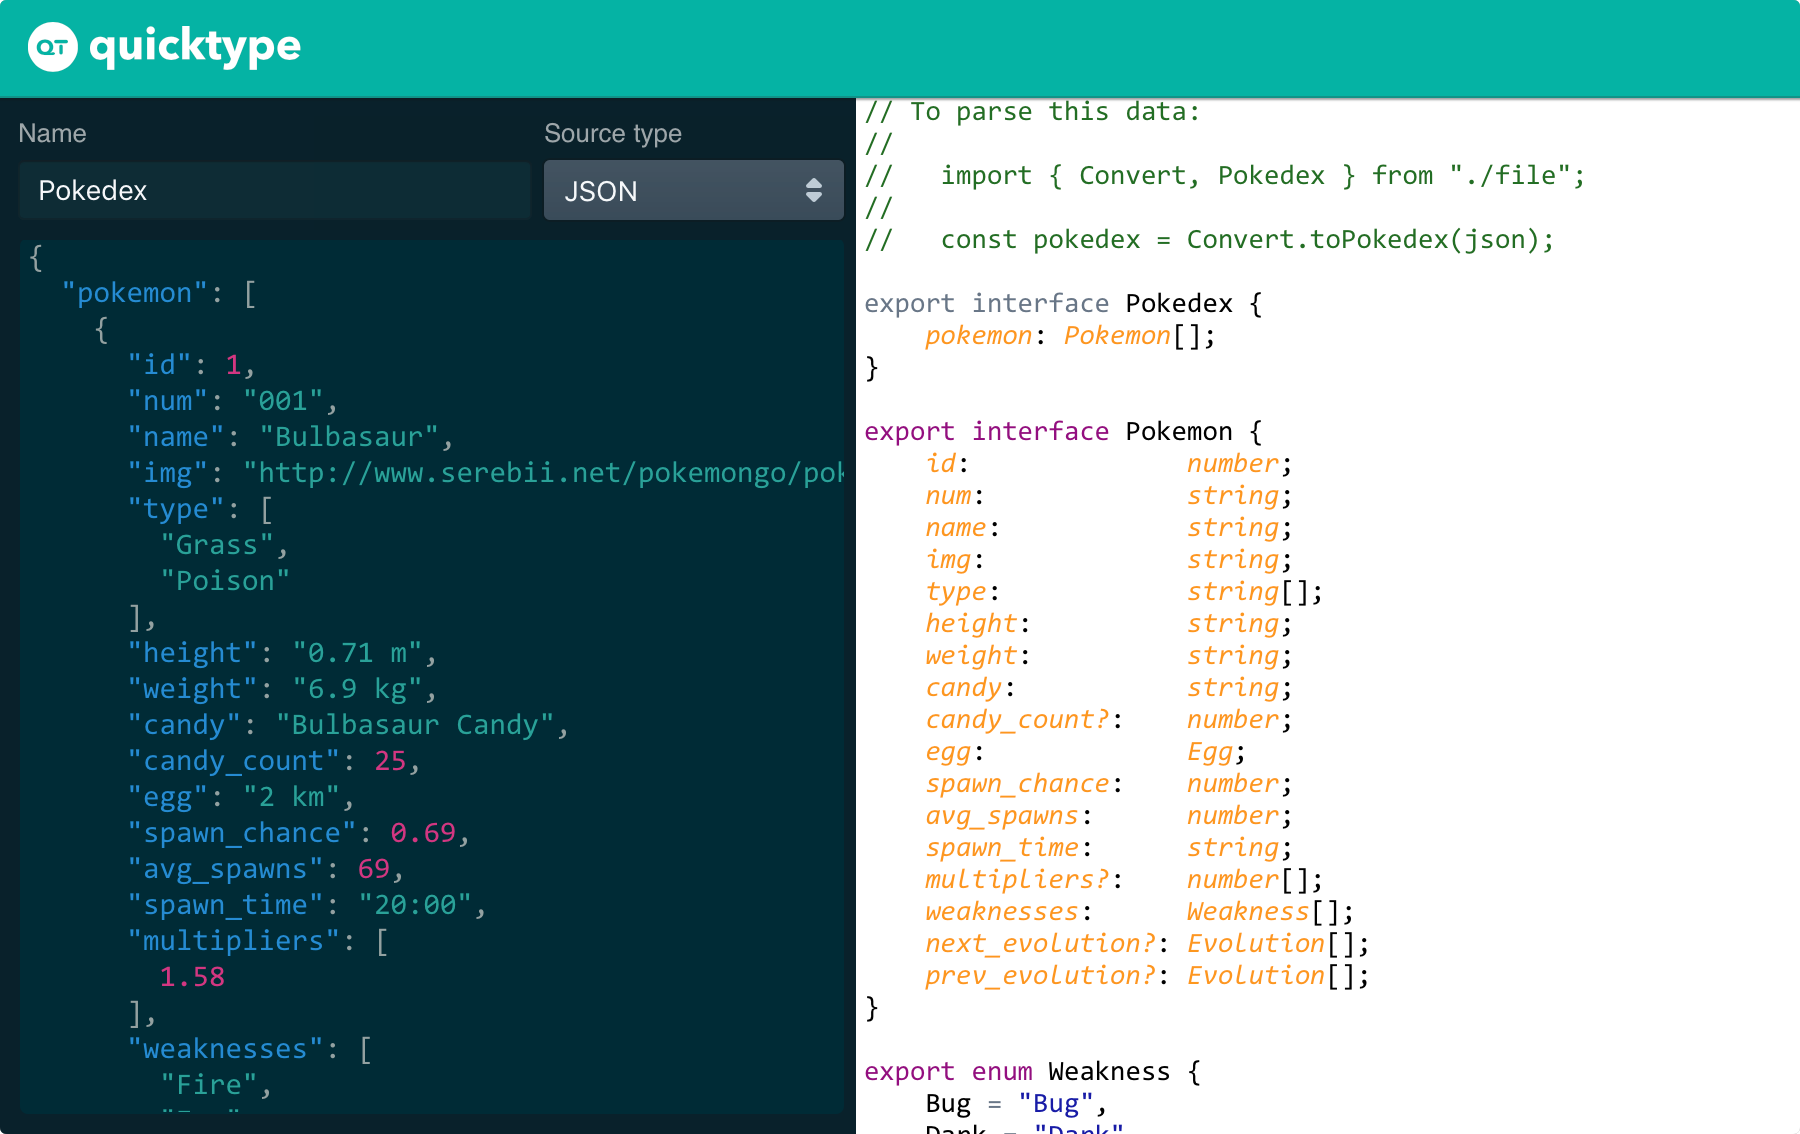 quicktype's web app translates sample JSON to types and marshaling code